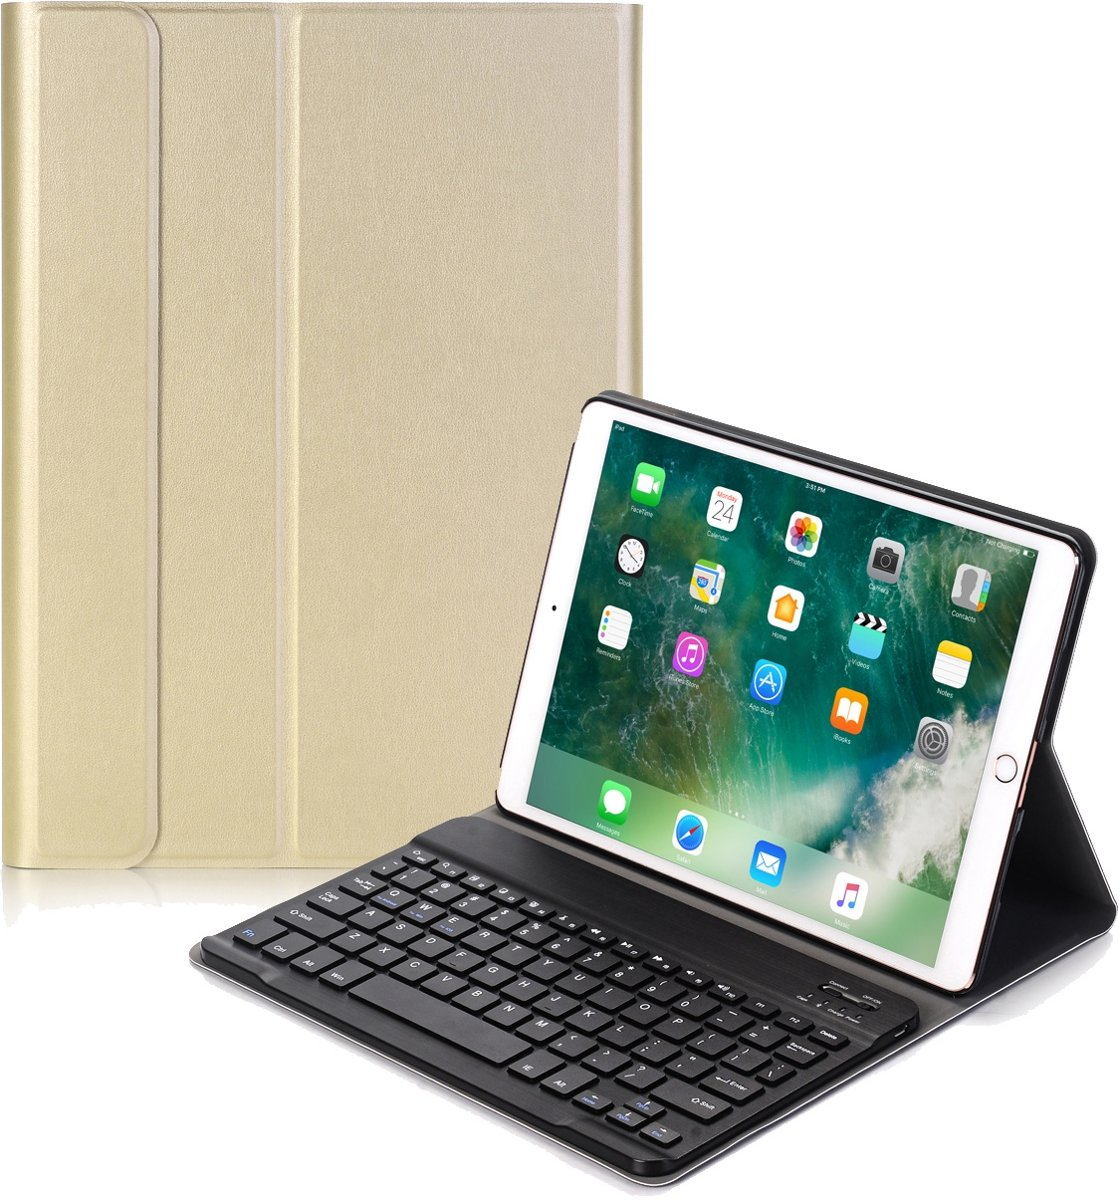 iPad 10.2 2019 Toetsenbord Hoes Keyboard Cover Hoesje Case - Goud